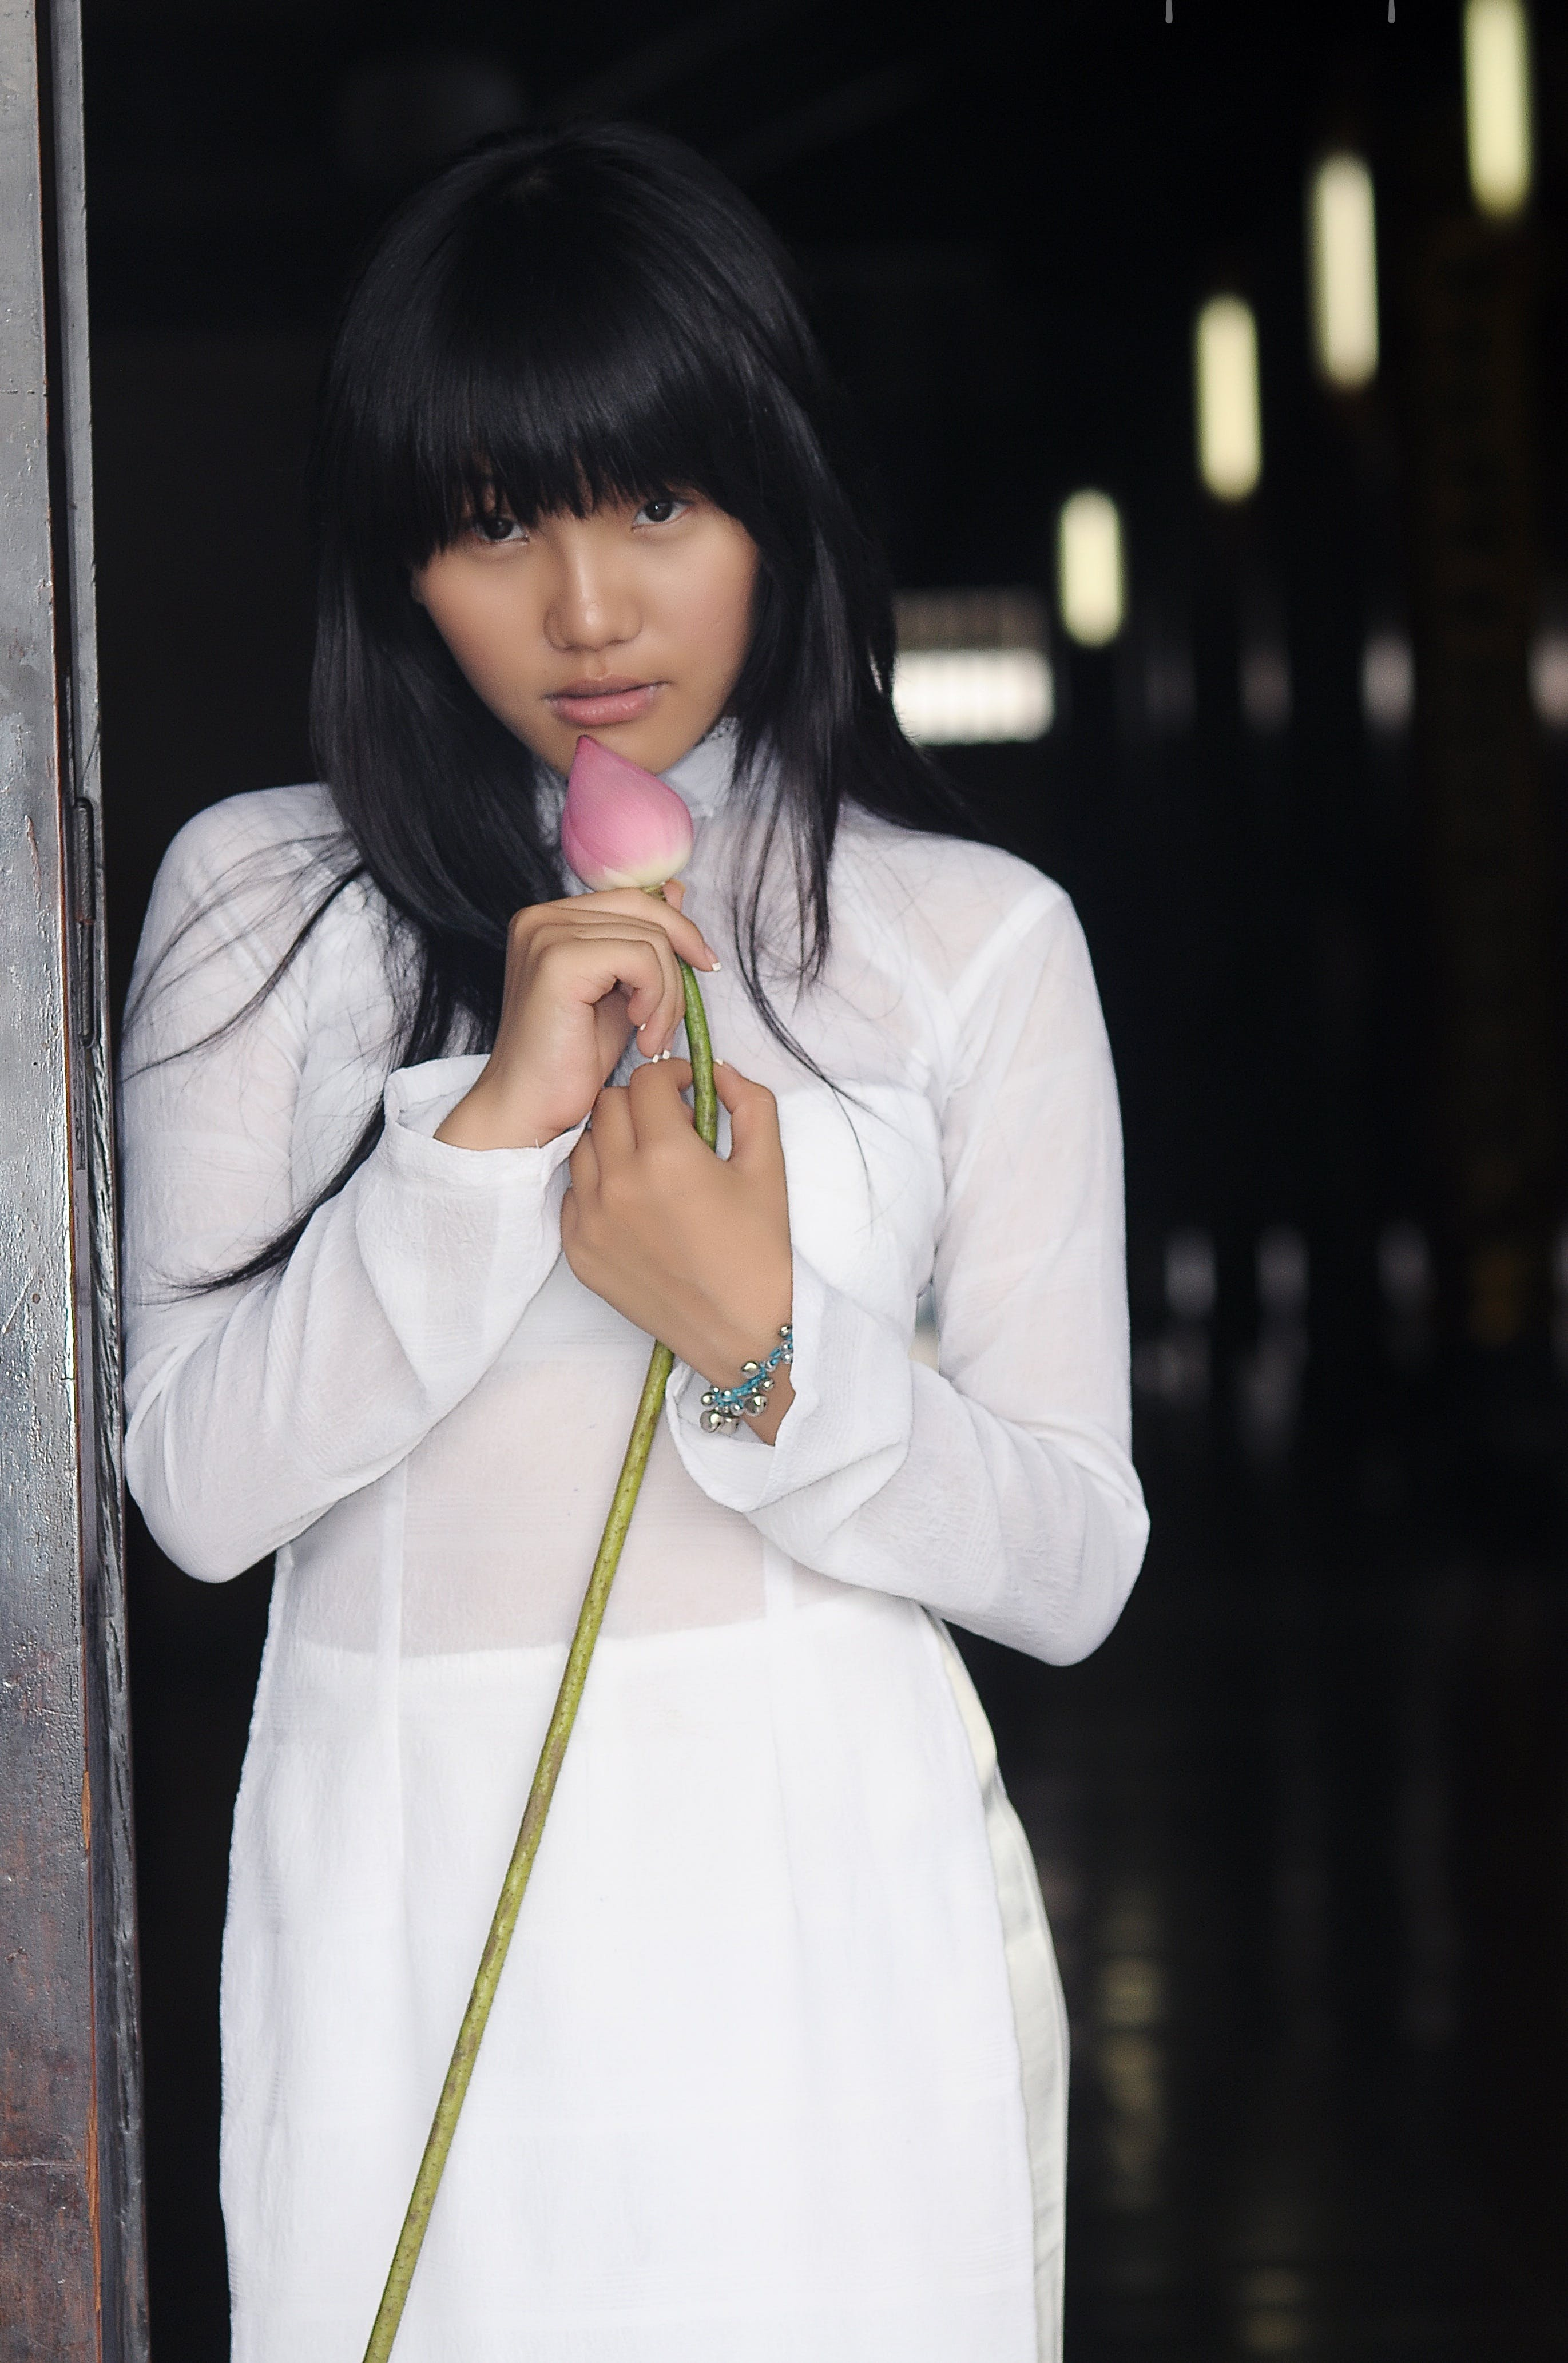 Woman Wearing White Long-sleeved Dress Holding a Pink Lotus Flower Bud Leaning on Grey Wall